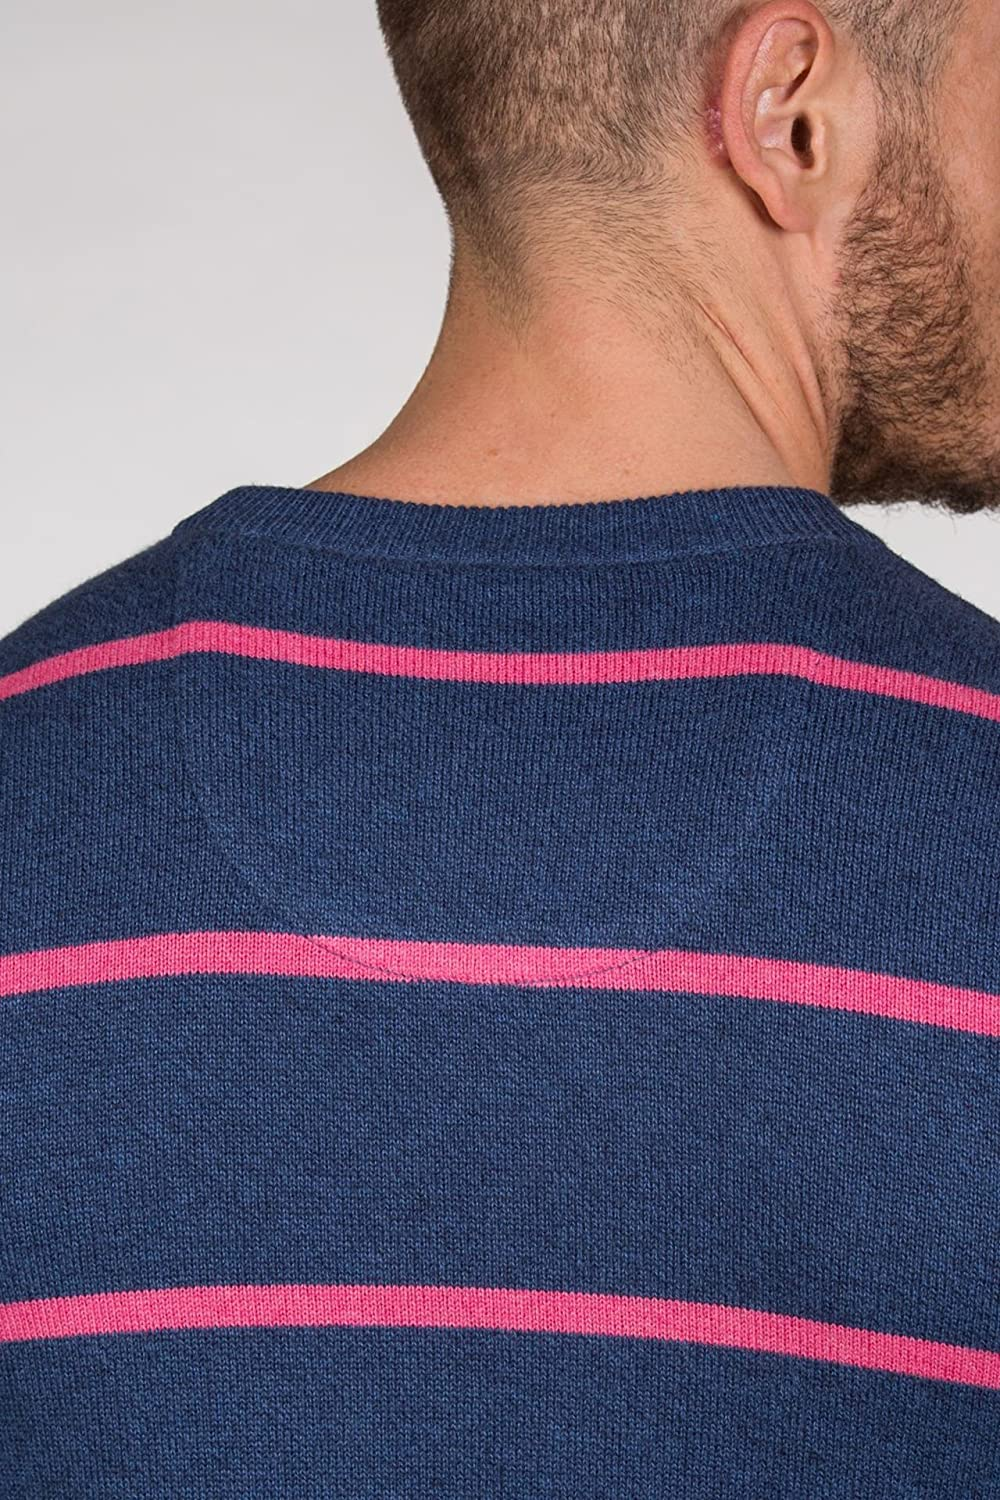 4755e990111acc Raging Bull Knitted Jumper - Cotton/Cashmere Striped Crew Neck:  Amazon.co.uk: Clothing